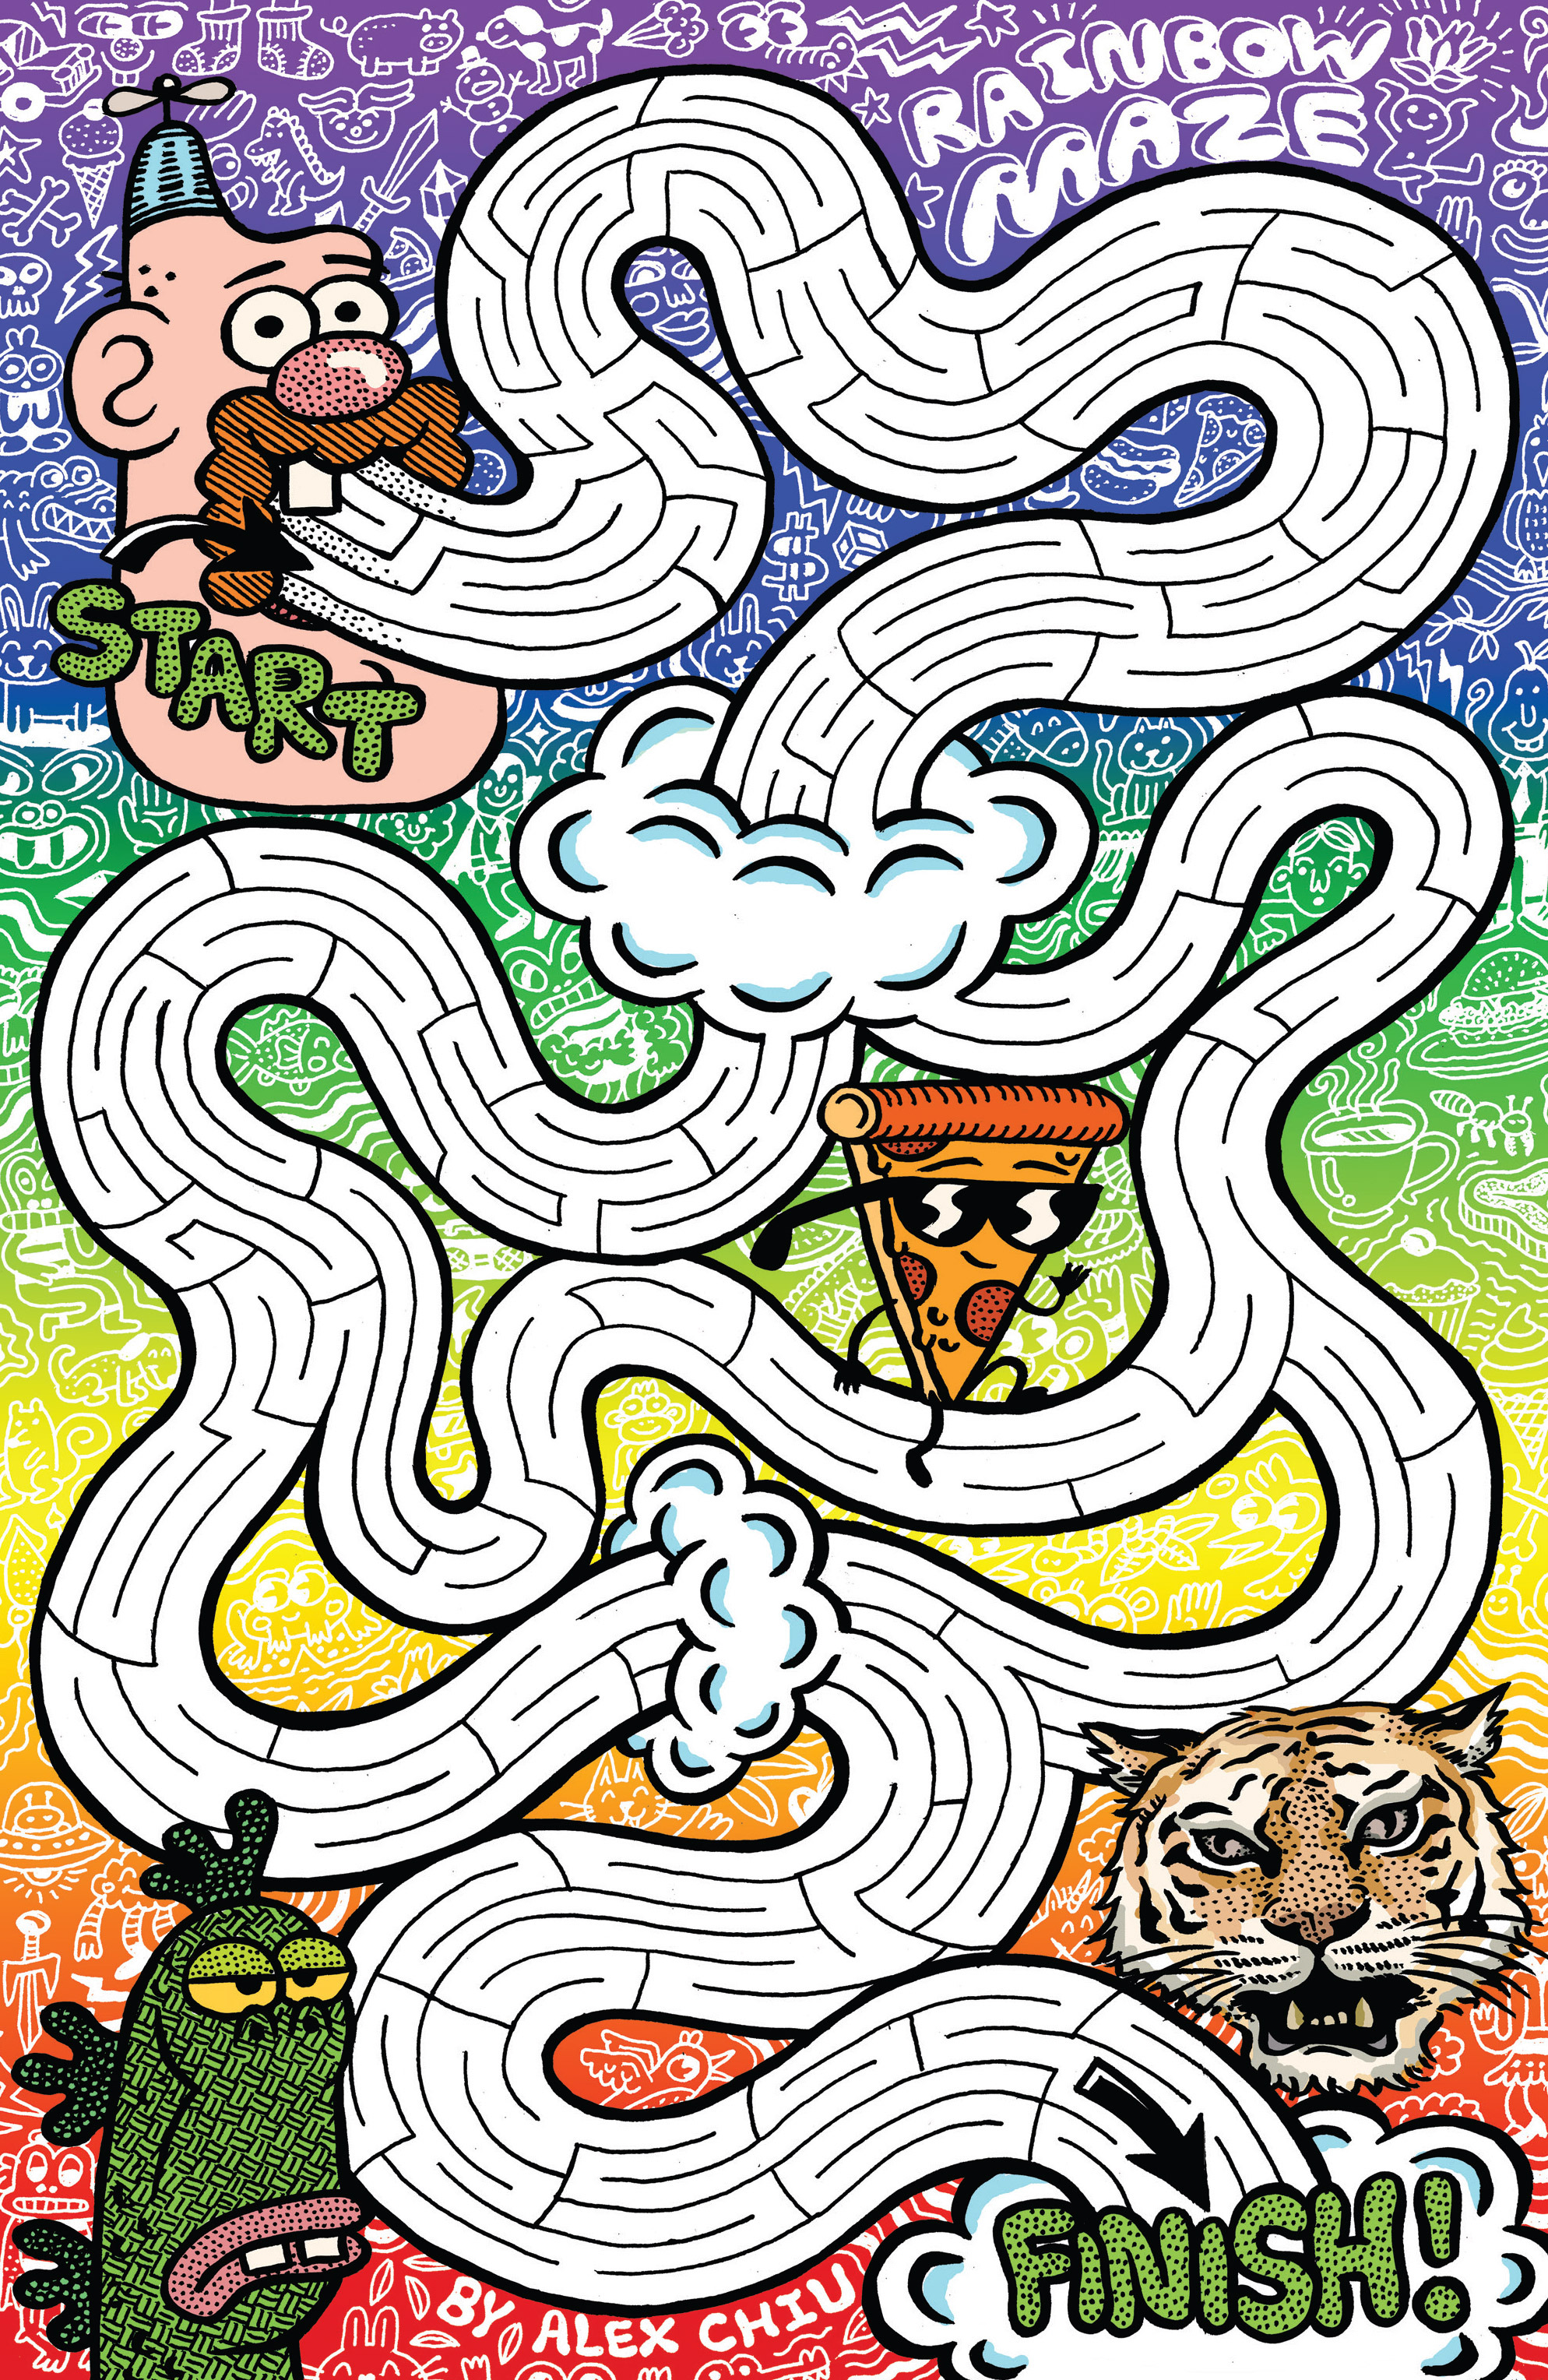 Read online Uncle Grandpa comic -  Issue #2 - 11